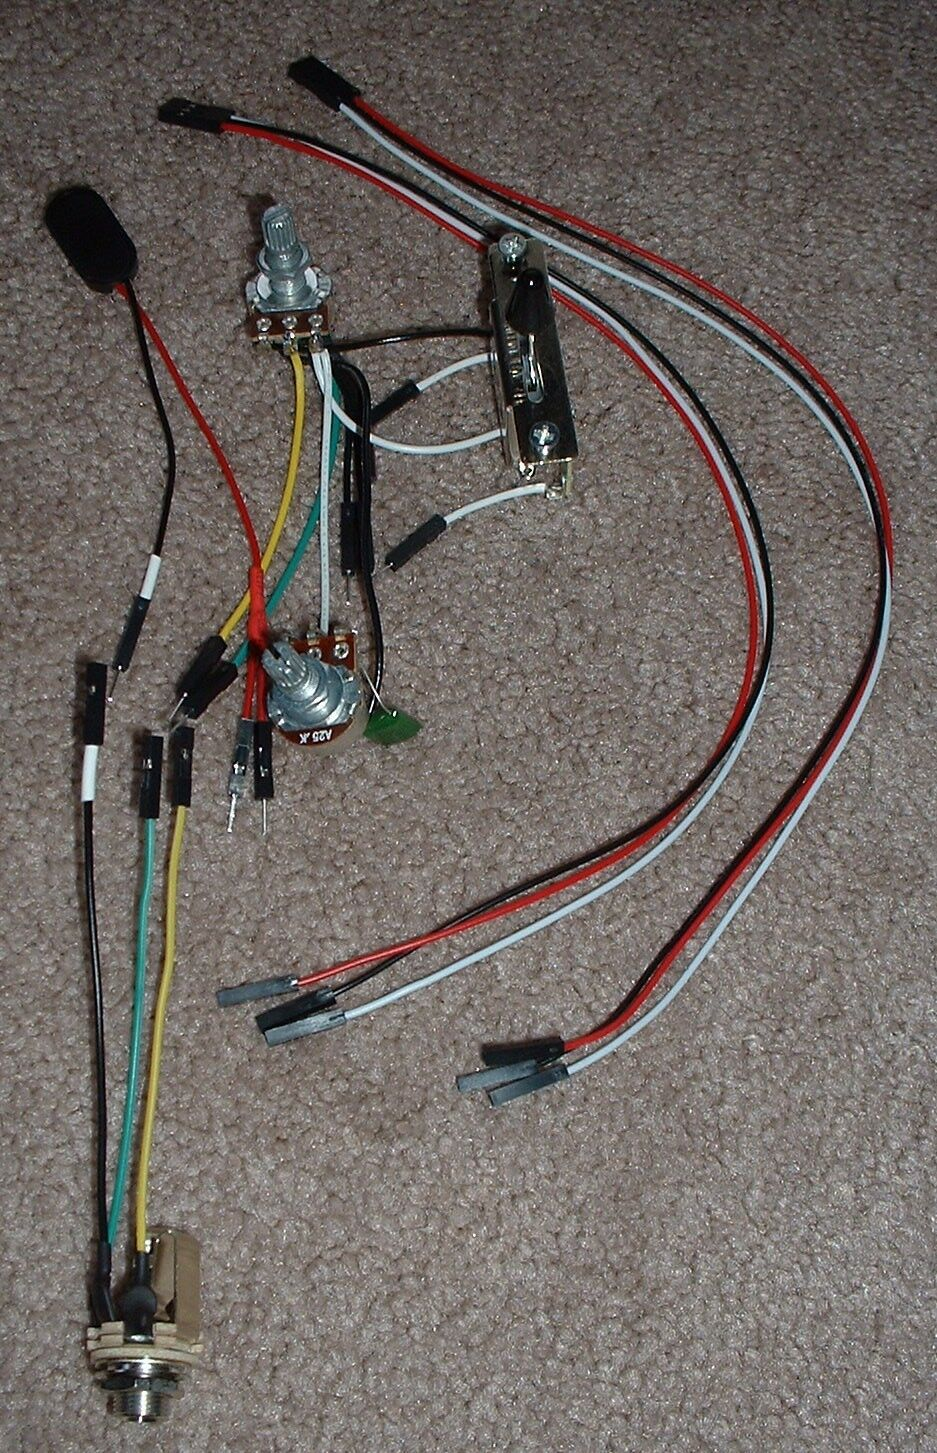 Emg Solderless Ez Install Wiring Kit 2 Active Pickups 1v 1t 3 Way Toggle Switch 1 Of See More